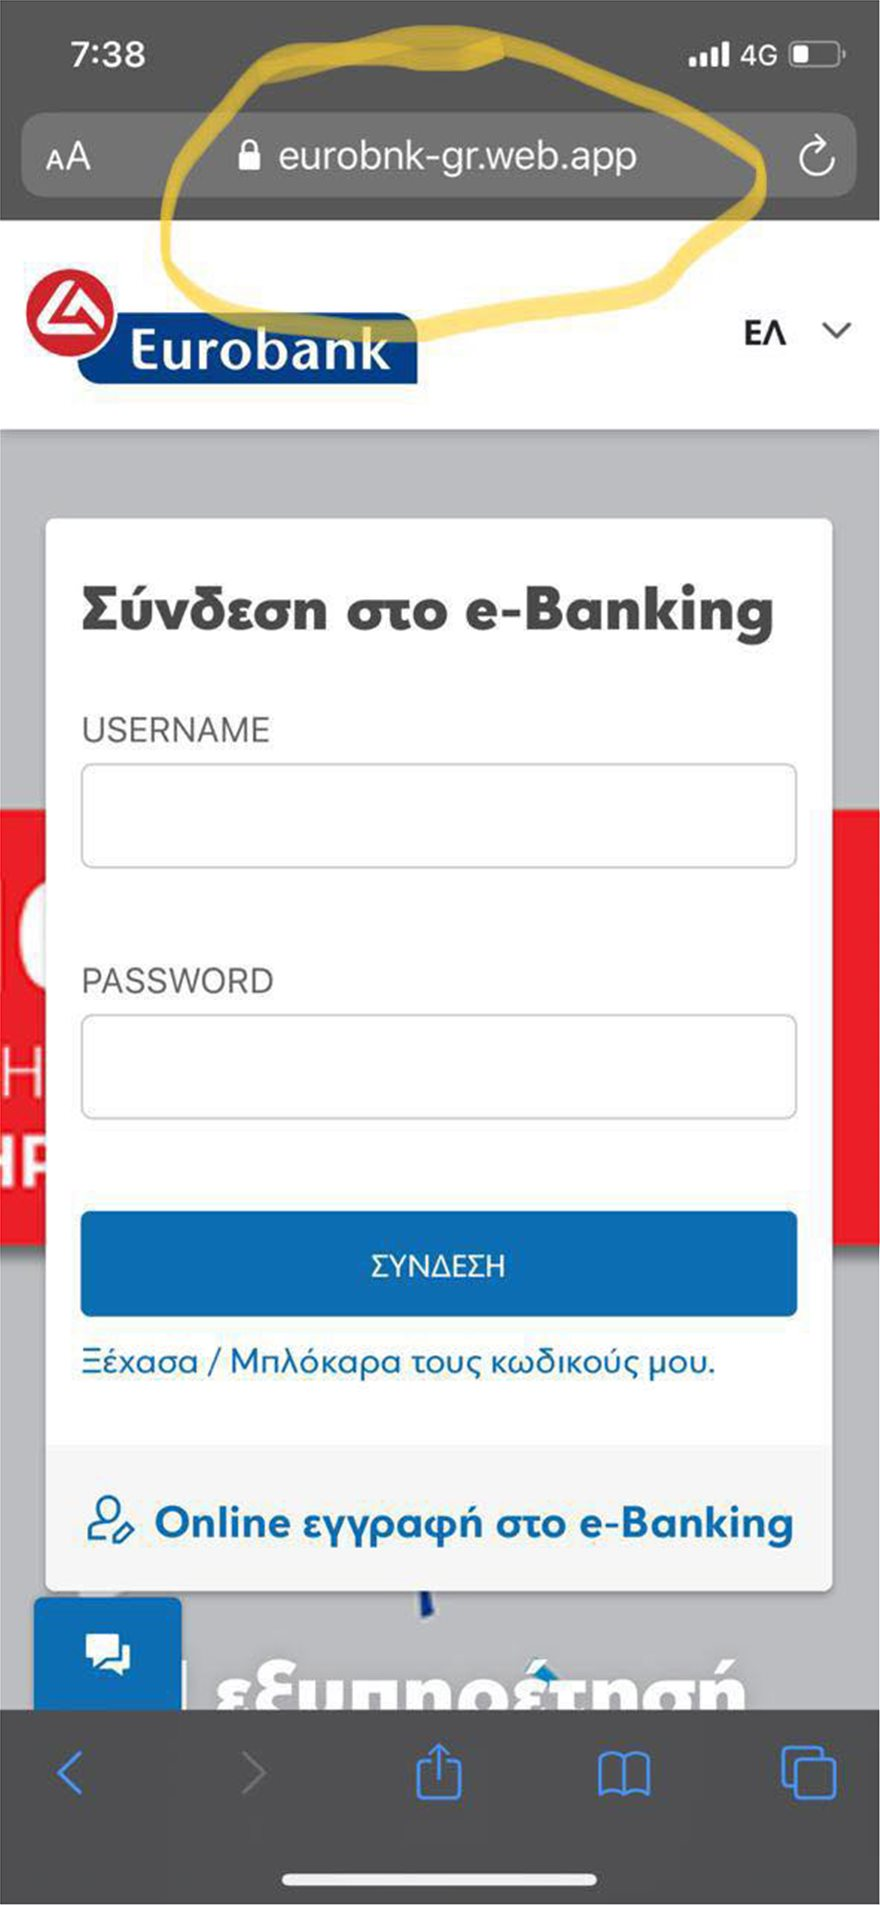 eurobank4 2 - Eurobank phishing attack or advertising?